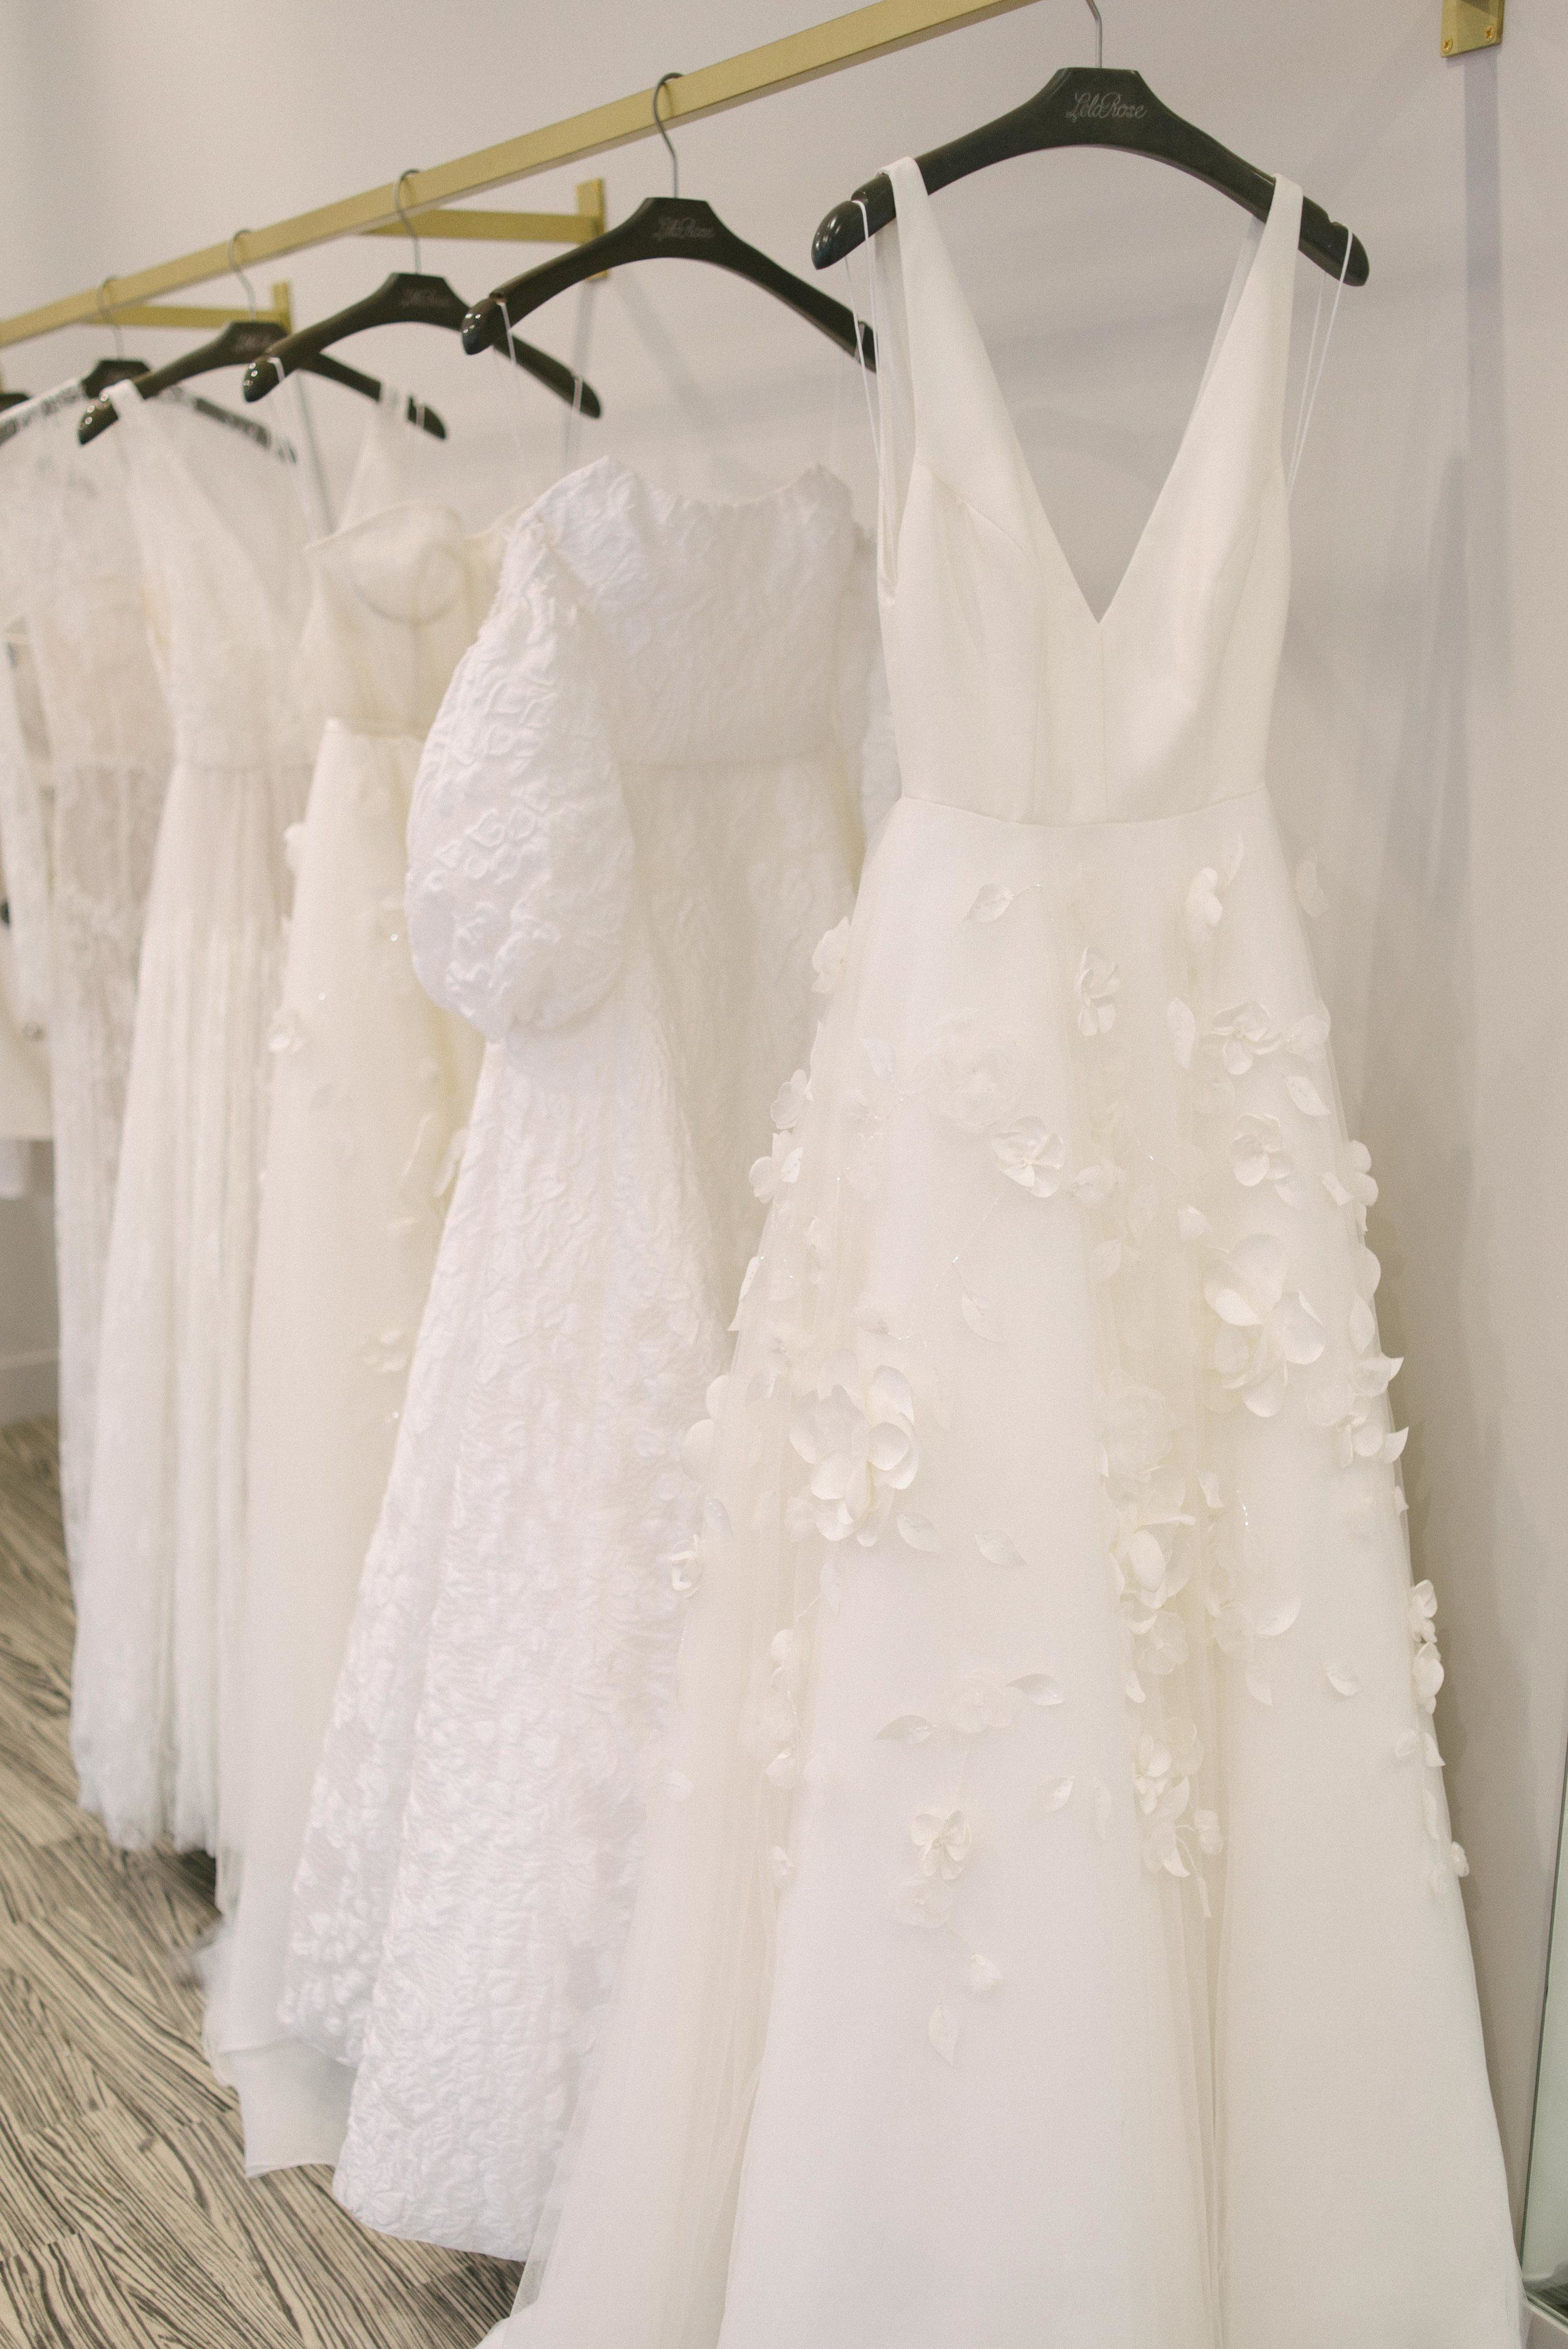 Lela Rose Spring 2020 Collection Preview #bridalshops